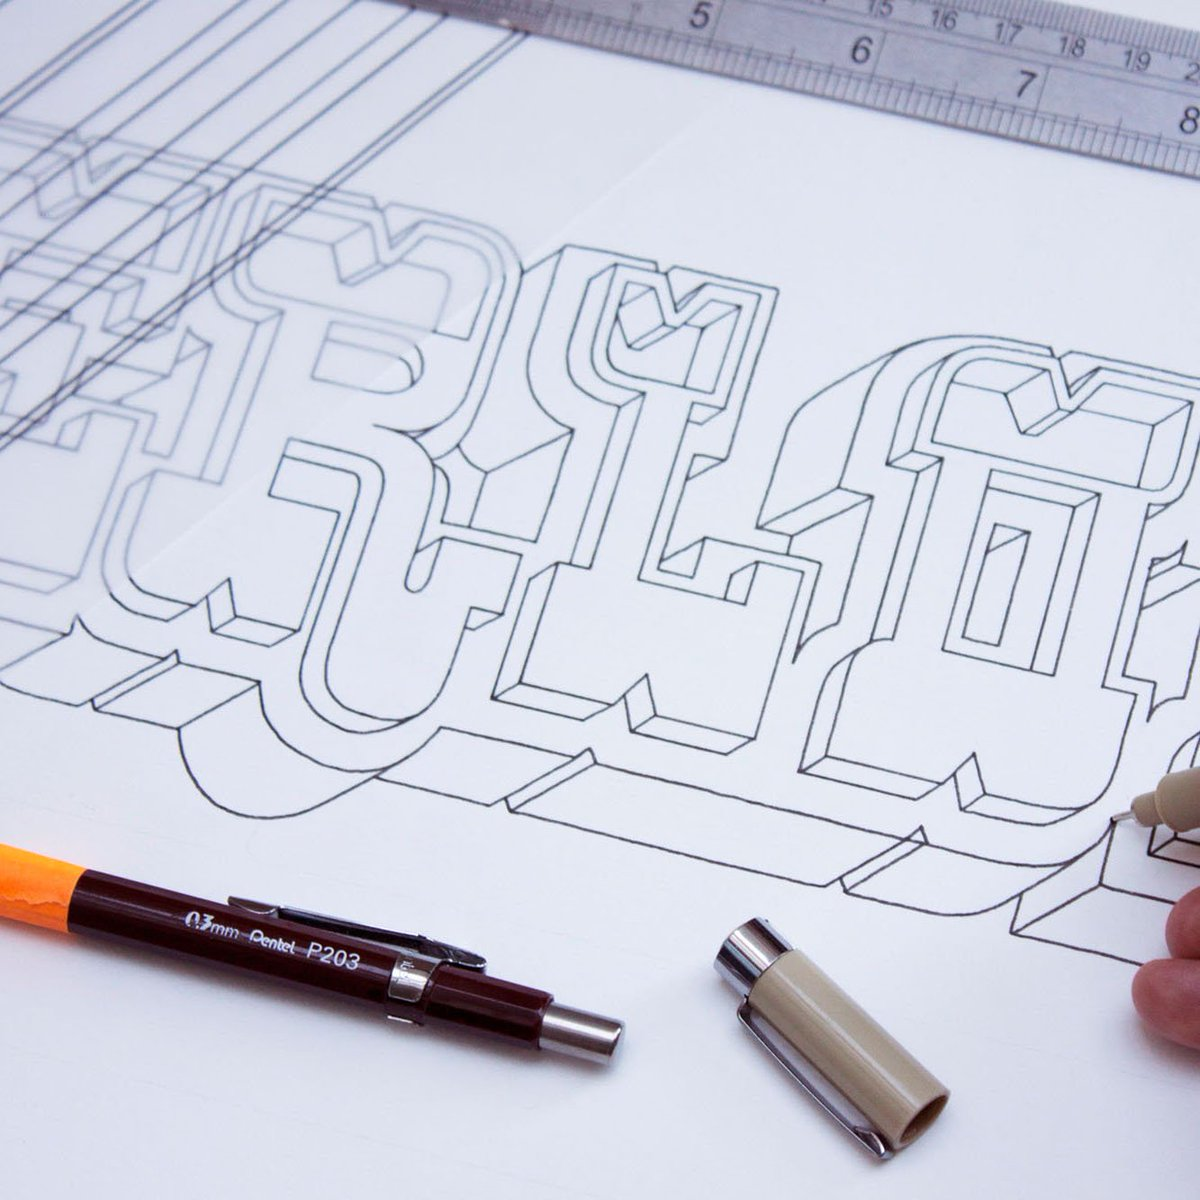 Check out this new #typography series to celebrate the 154th birthday of the #LondonUnderground via @theaoi ...